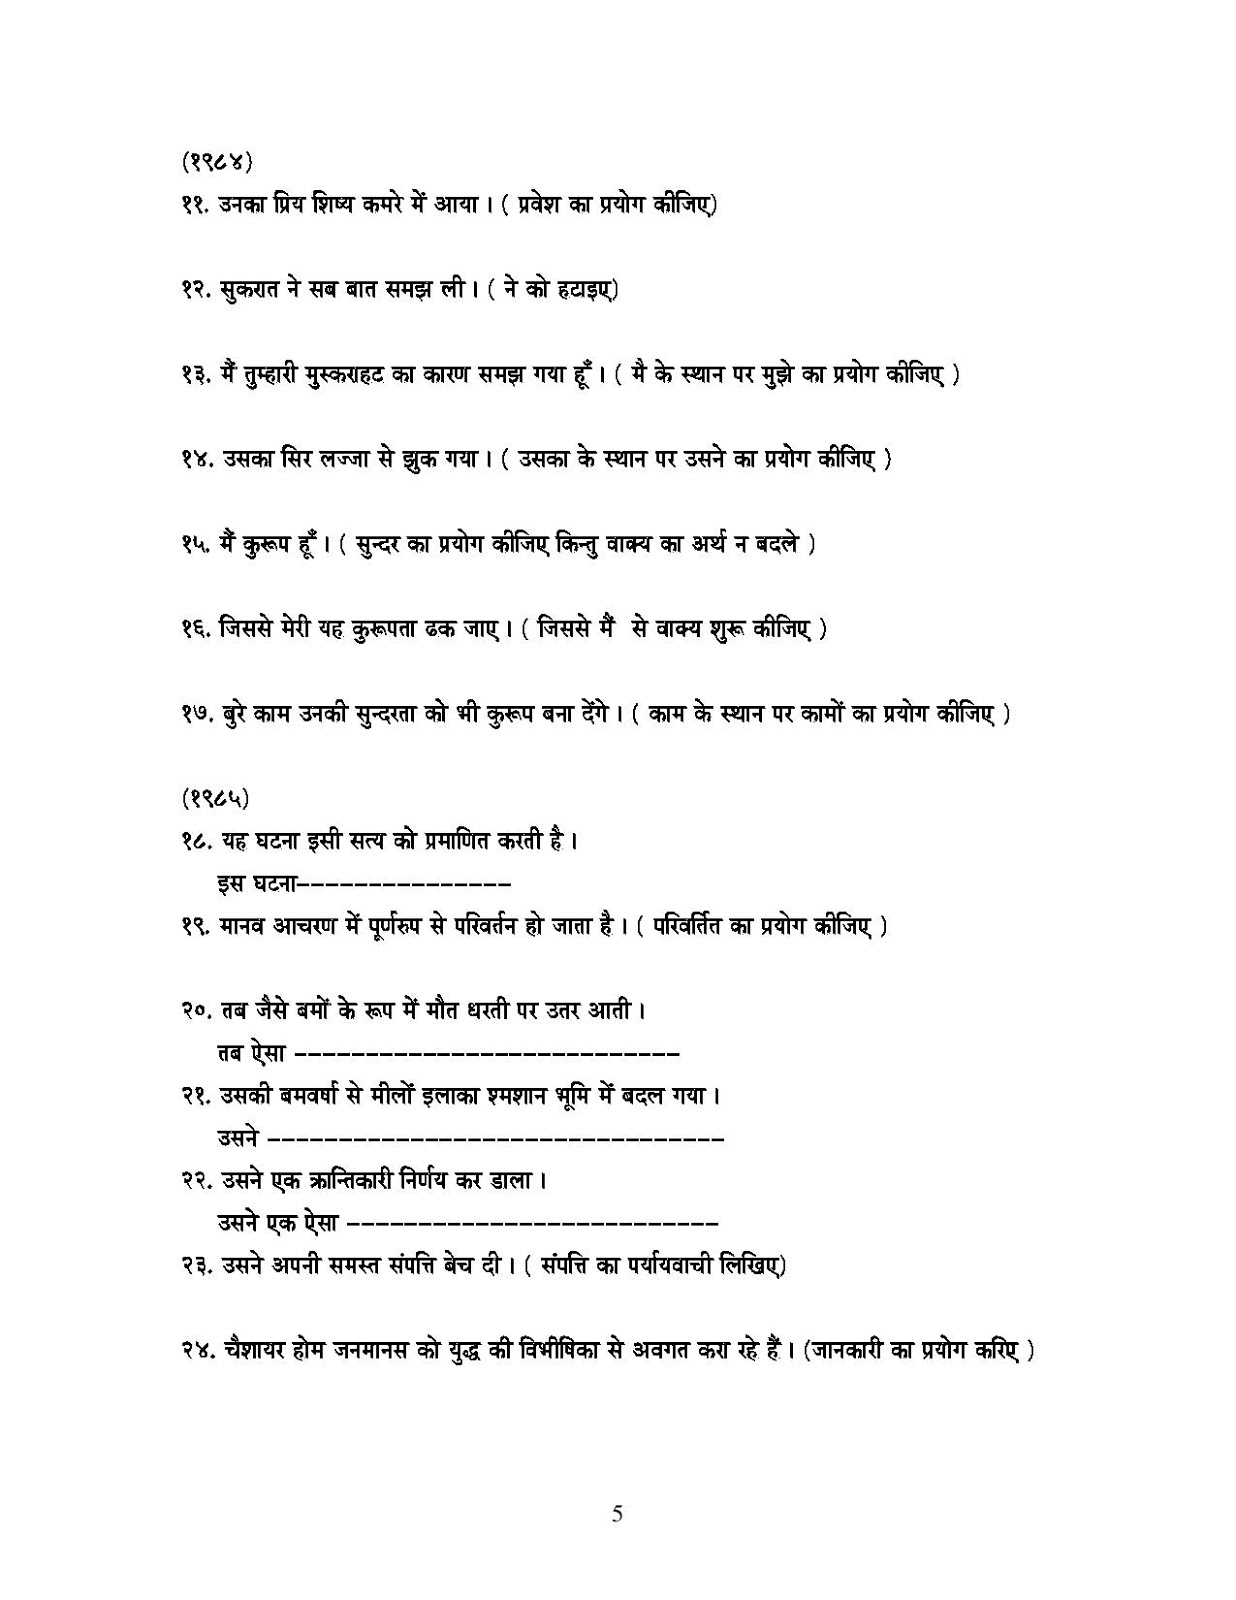 Hindi Grammar Work Sheet Collection For Classes 5 6 7 Amp 8 Grammar Work Sheet For Icse Board